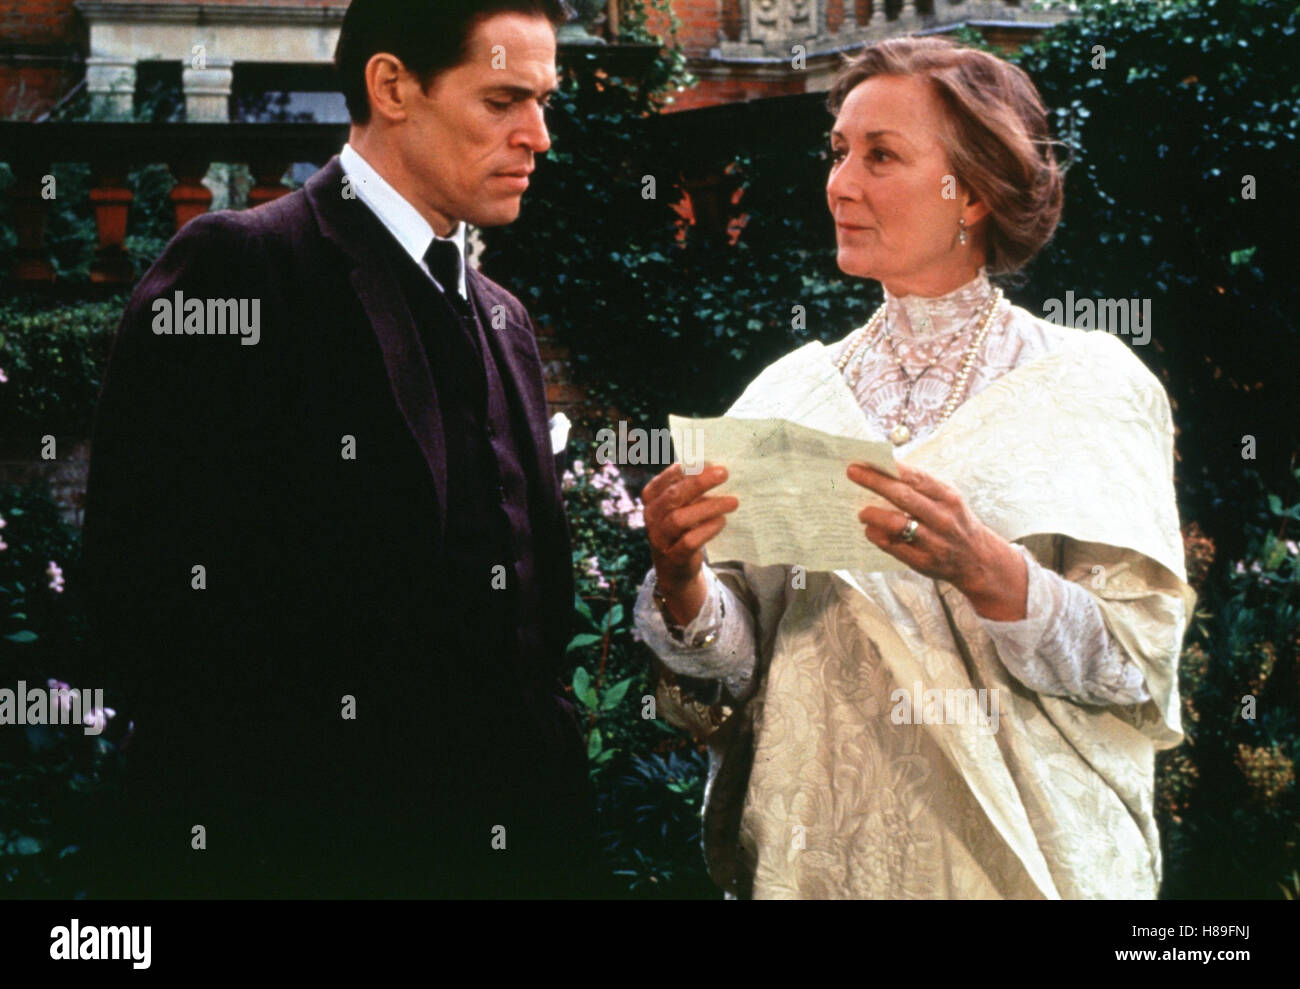 Tom & Viv, (TOM & VIV) USA 1994, Regie: Brian Gilbert, WILLEM DAFOE, ROSEMARY HARRIS, Stichwort: Zettel, - Stock Image